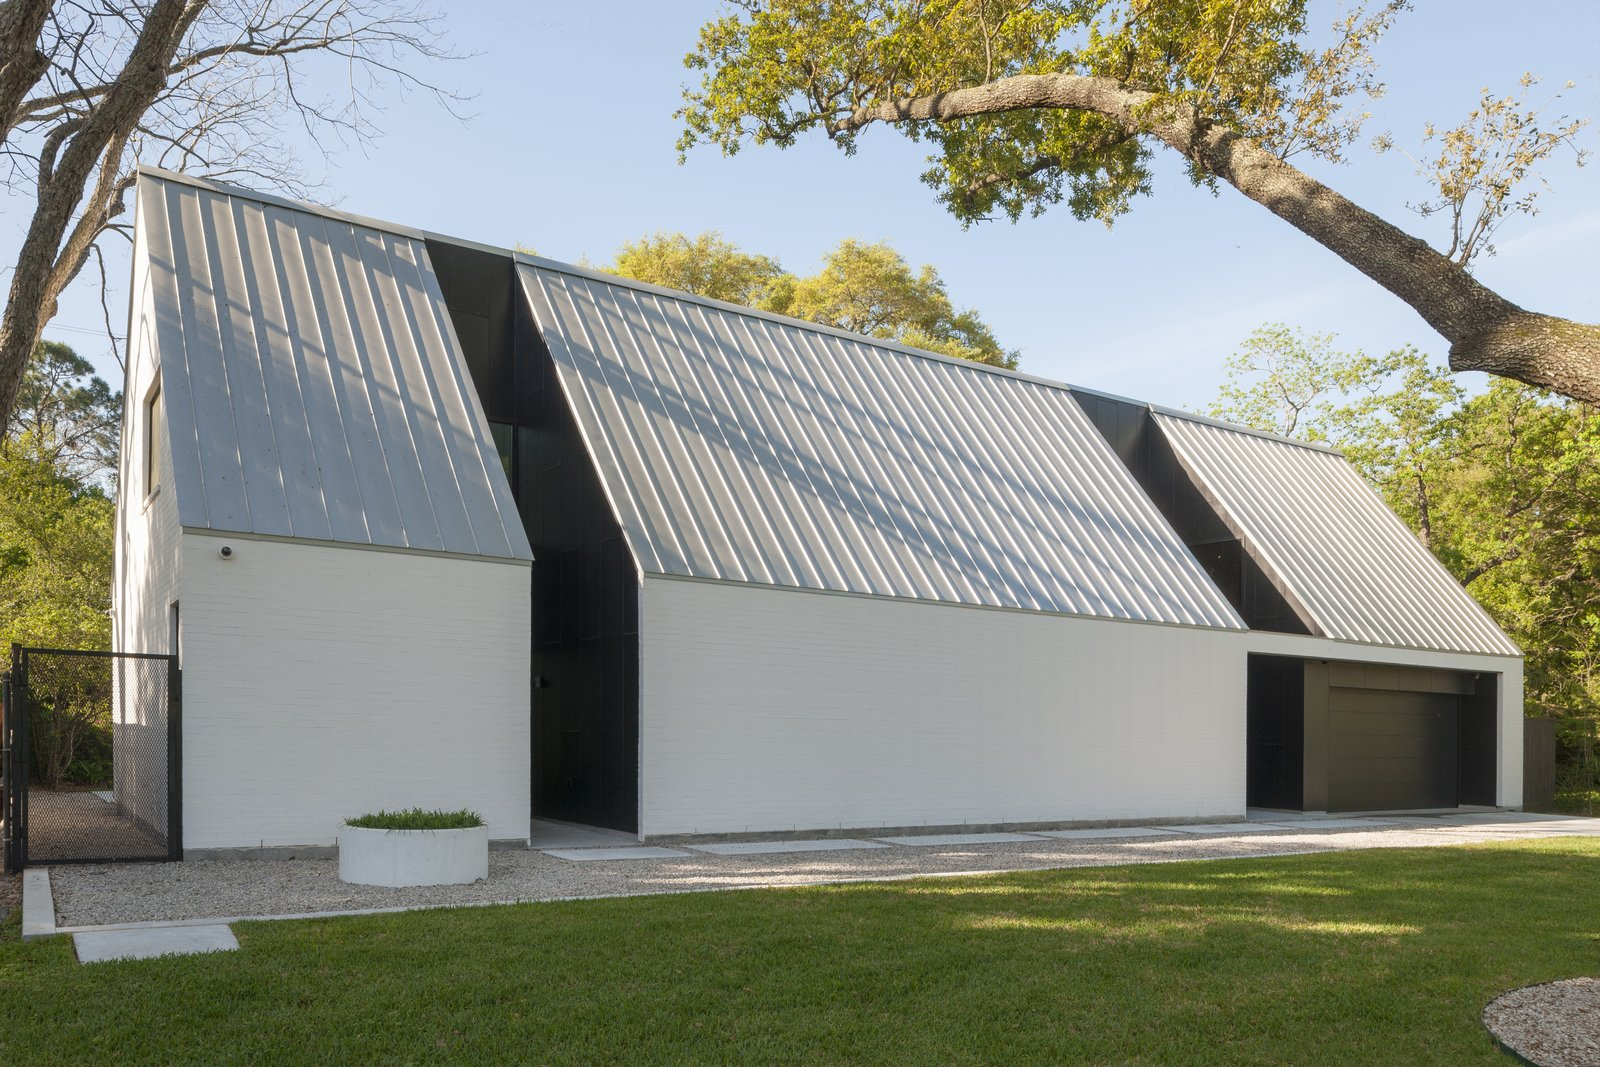 Exterior, Metal Roof Material, Brick Siding Material, and House Building Type  R House